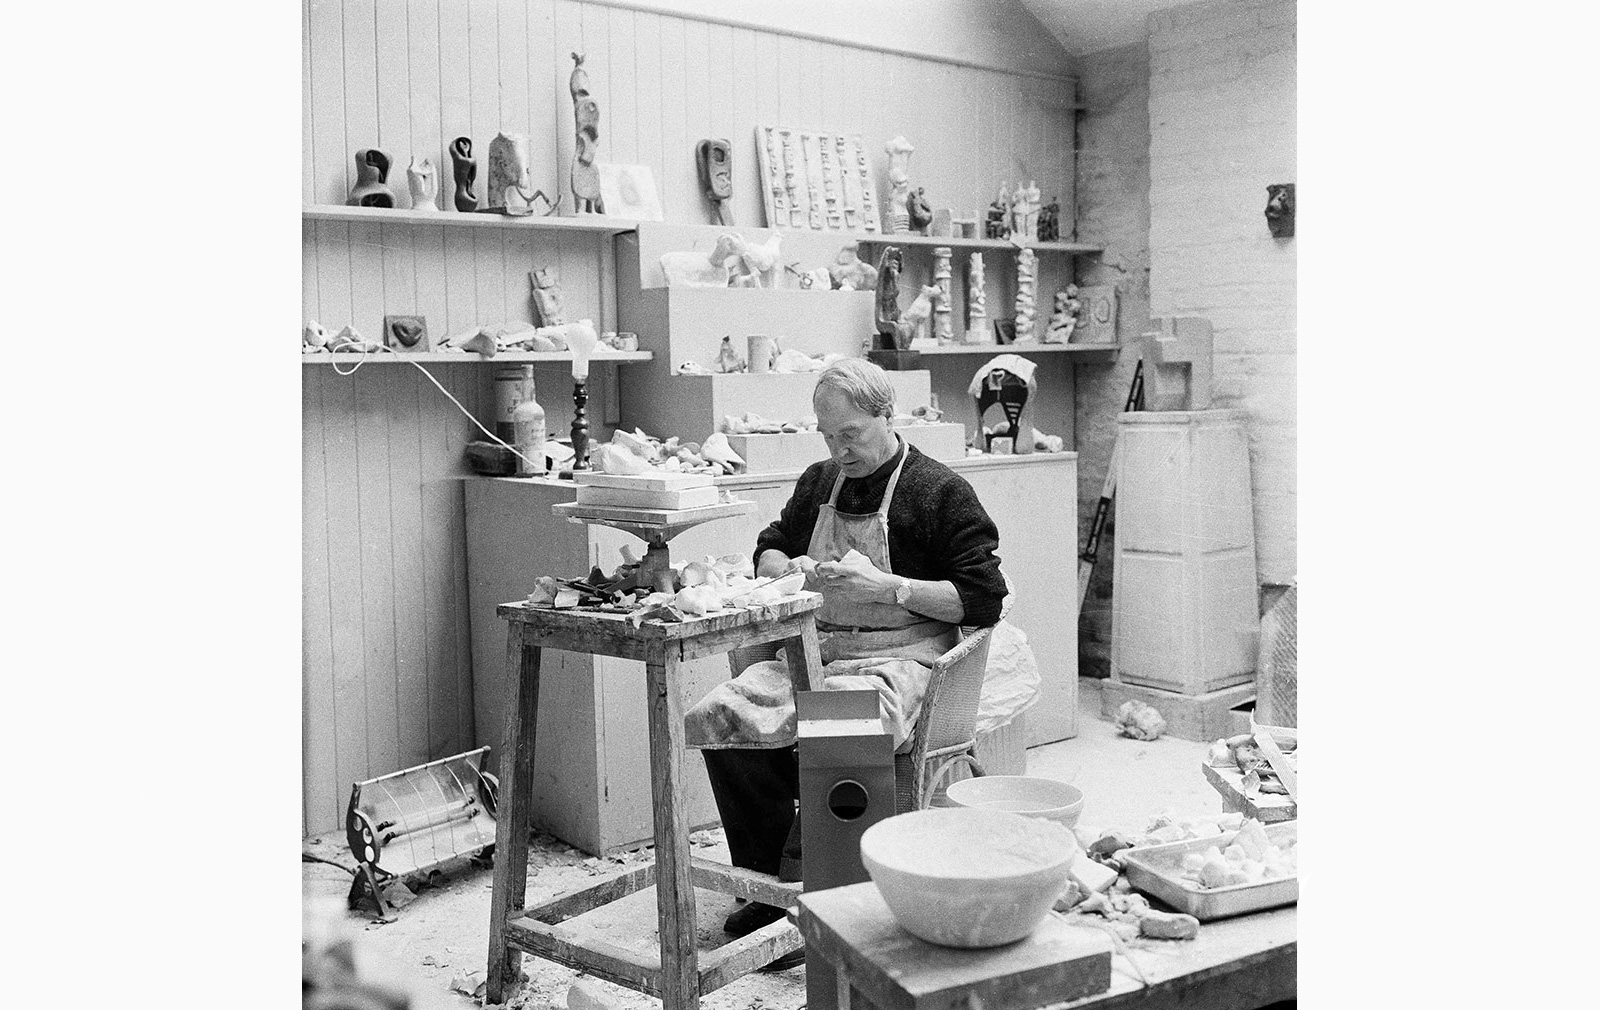 Henry Moore working on a plaster in his Maquette Studio, Perry Green, c. 1960. Photography: John Hedgecoe. Reproduced by permission of The Henry Moore Foundation for the Wunderkammer: Origins of Form exhibition at Gagosian